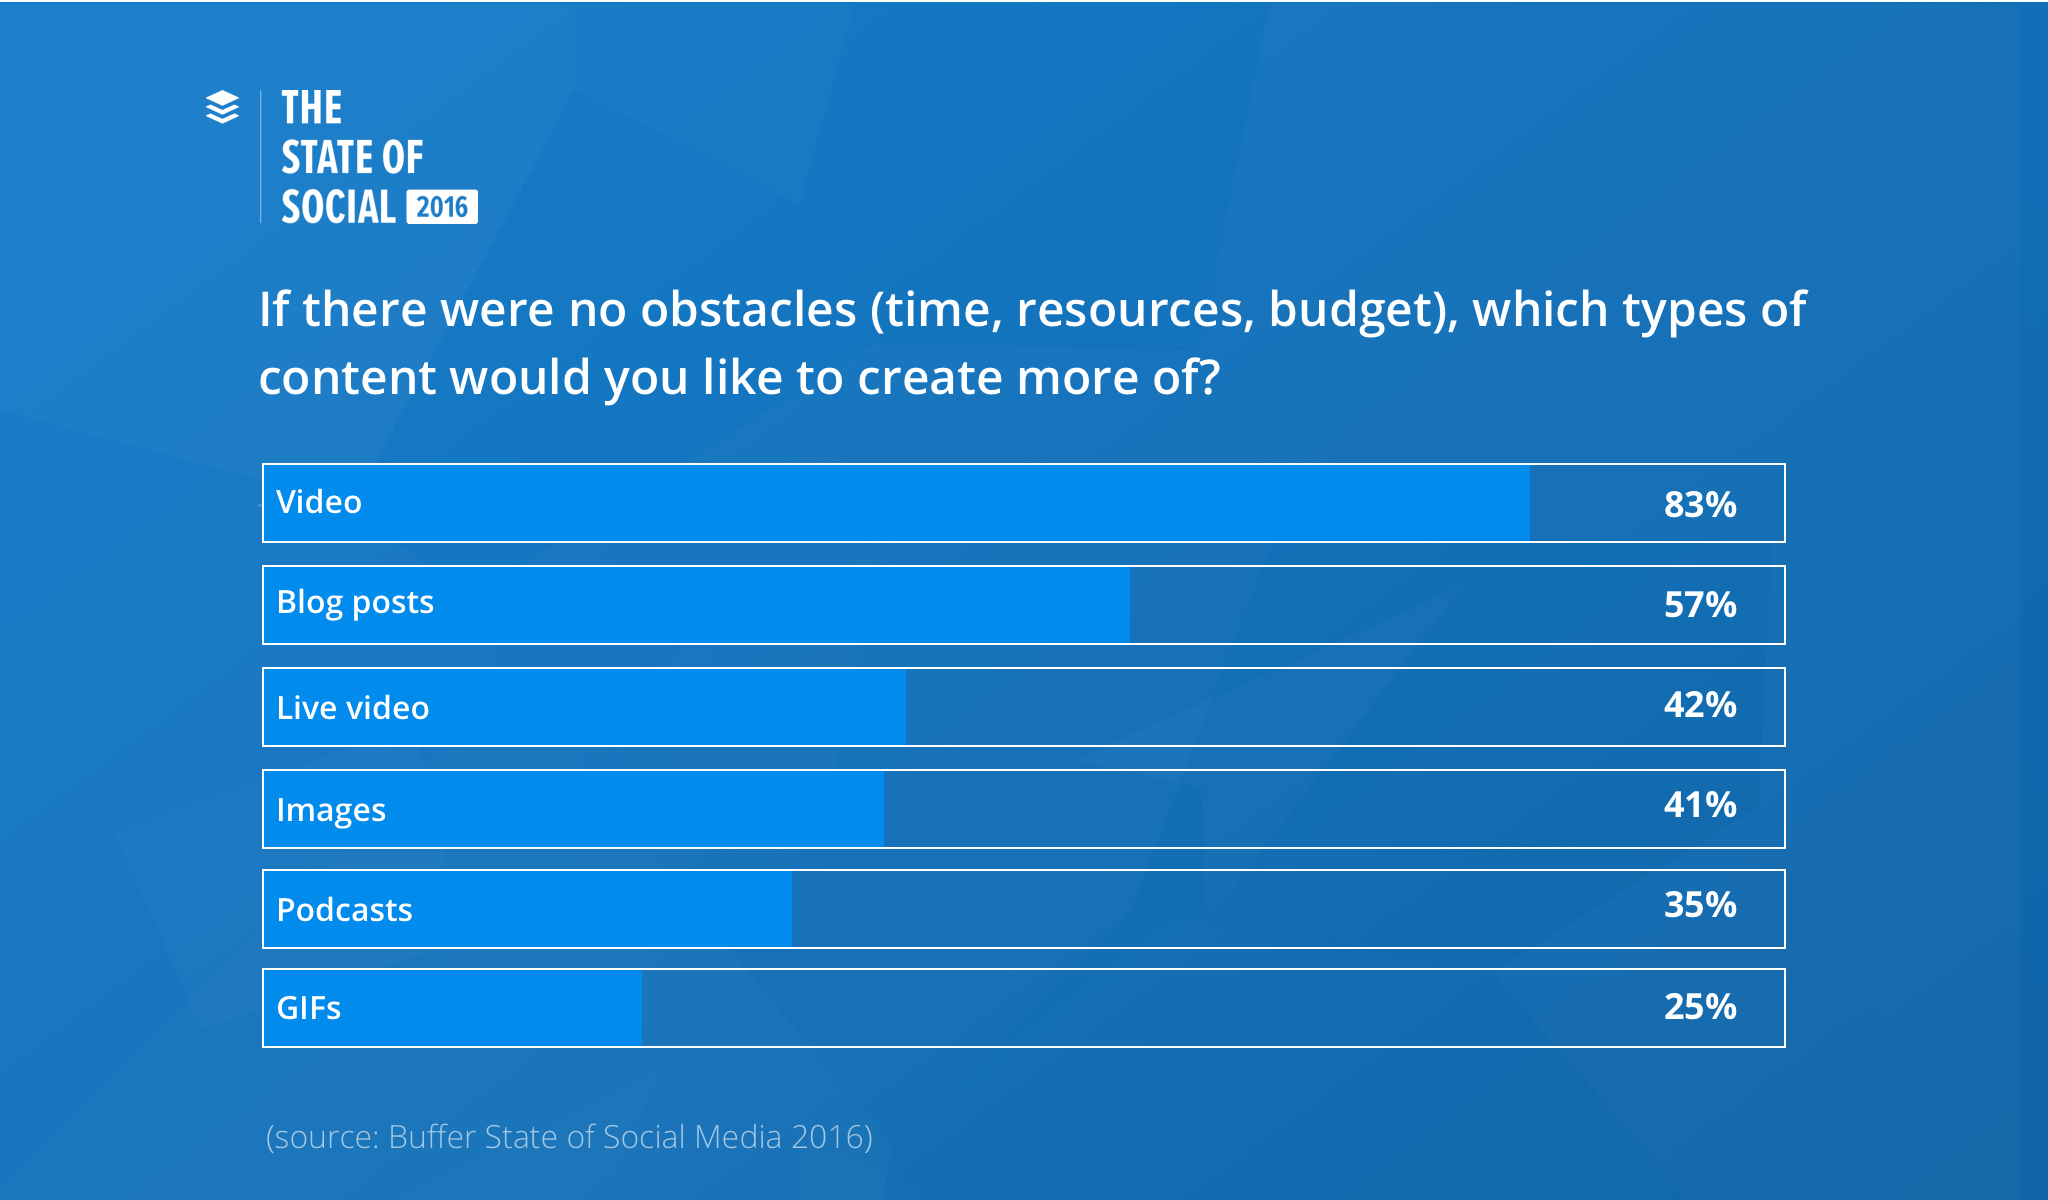 42 percent of marketers would want to create more live videos if they were not restricted by time, resources, or budget.